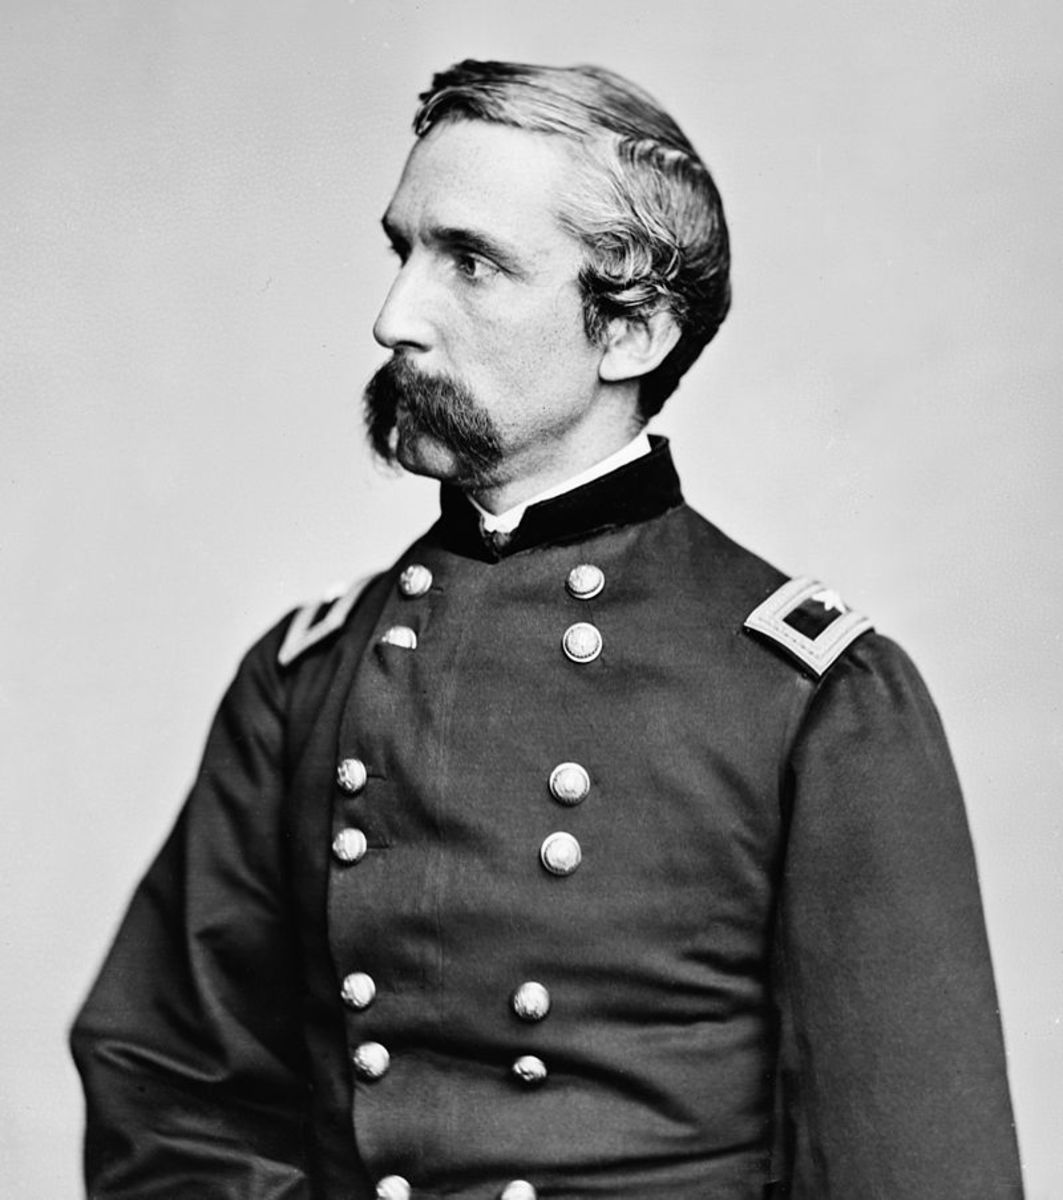 Colonel Joshua L. Chamberlain commander of the 20th Maine who save the day for the Union army at Gettysburg July 2,1863.